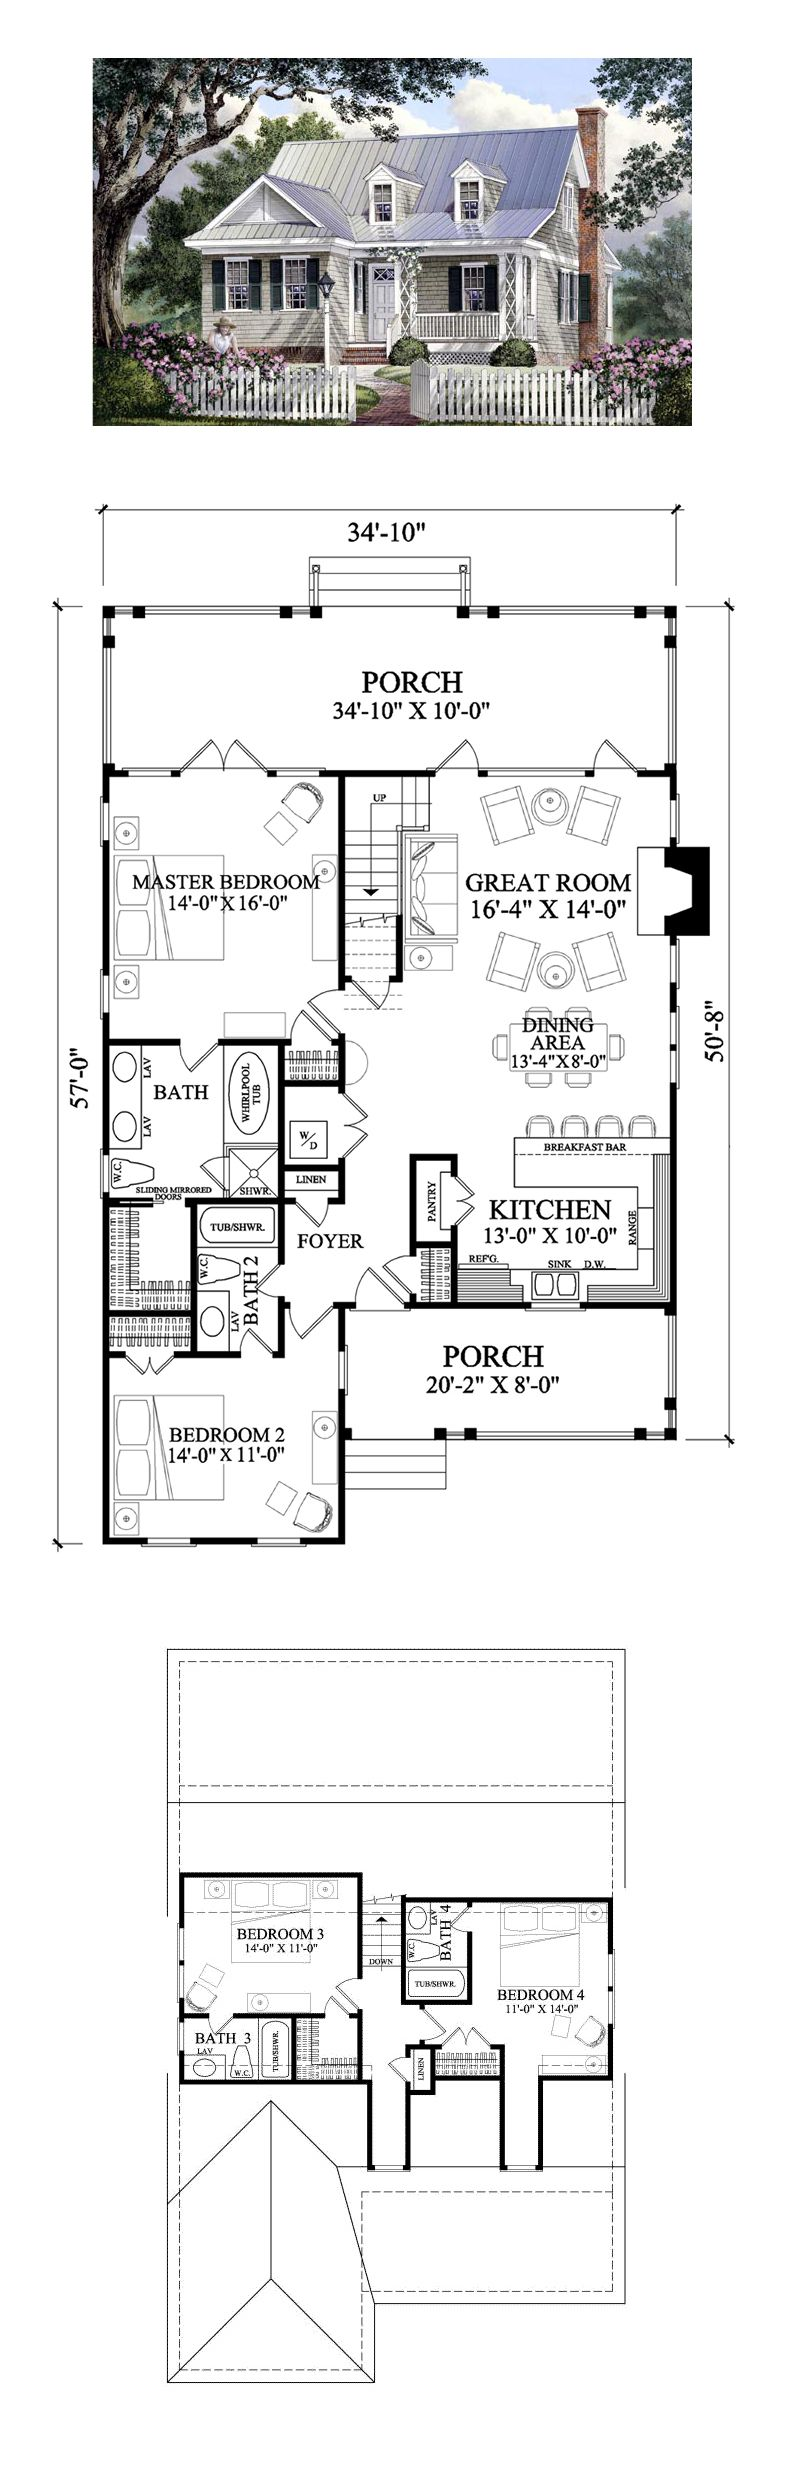 Cape Cod House Plan 86106 Total Living Area 1985 sq ft 4